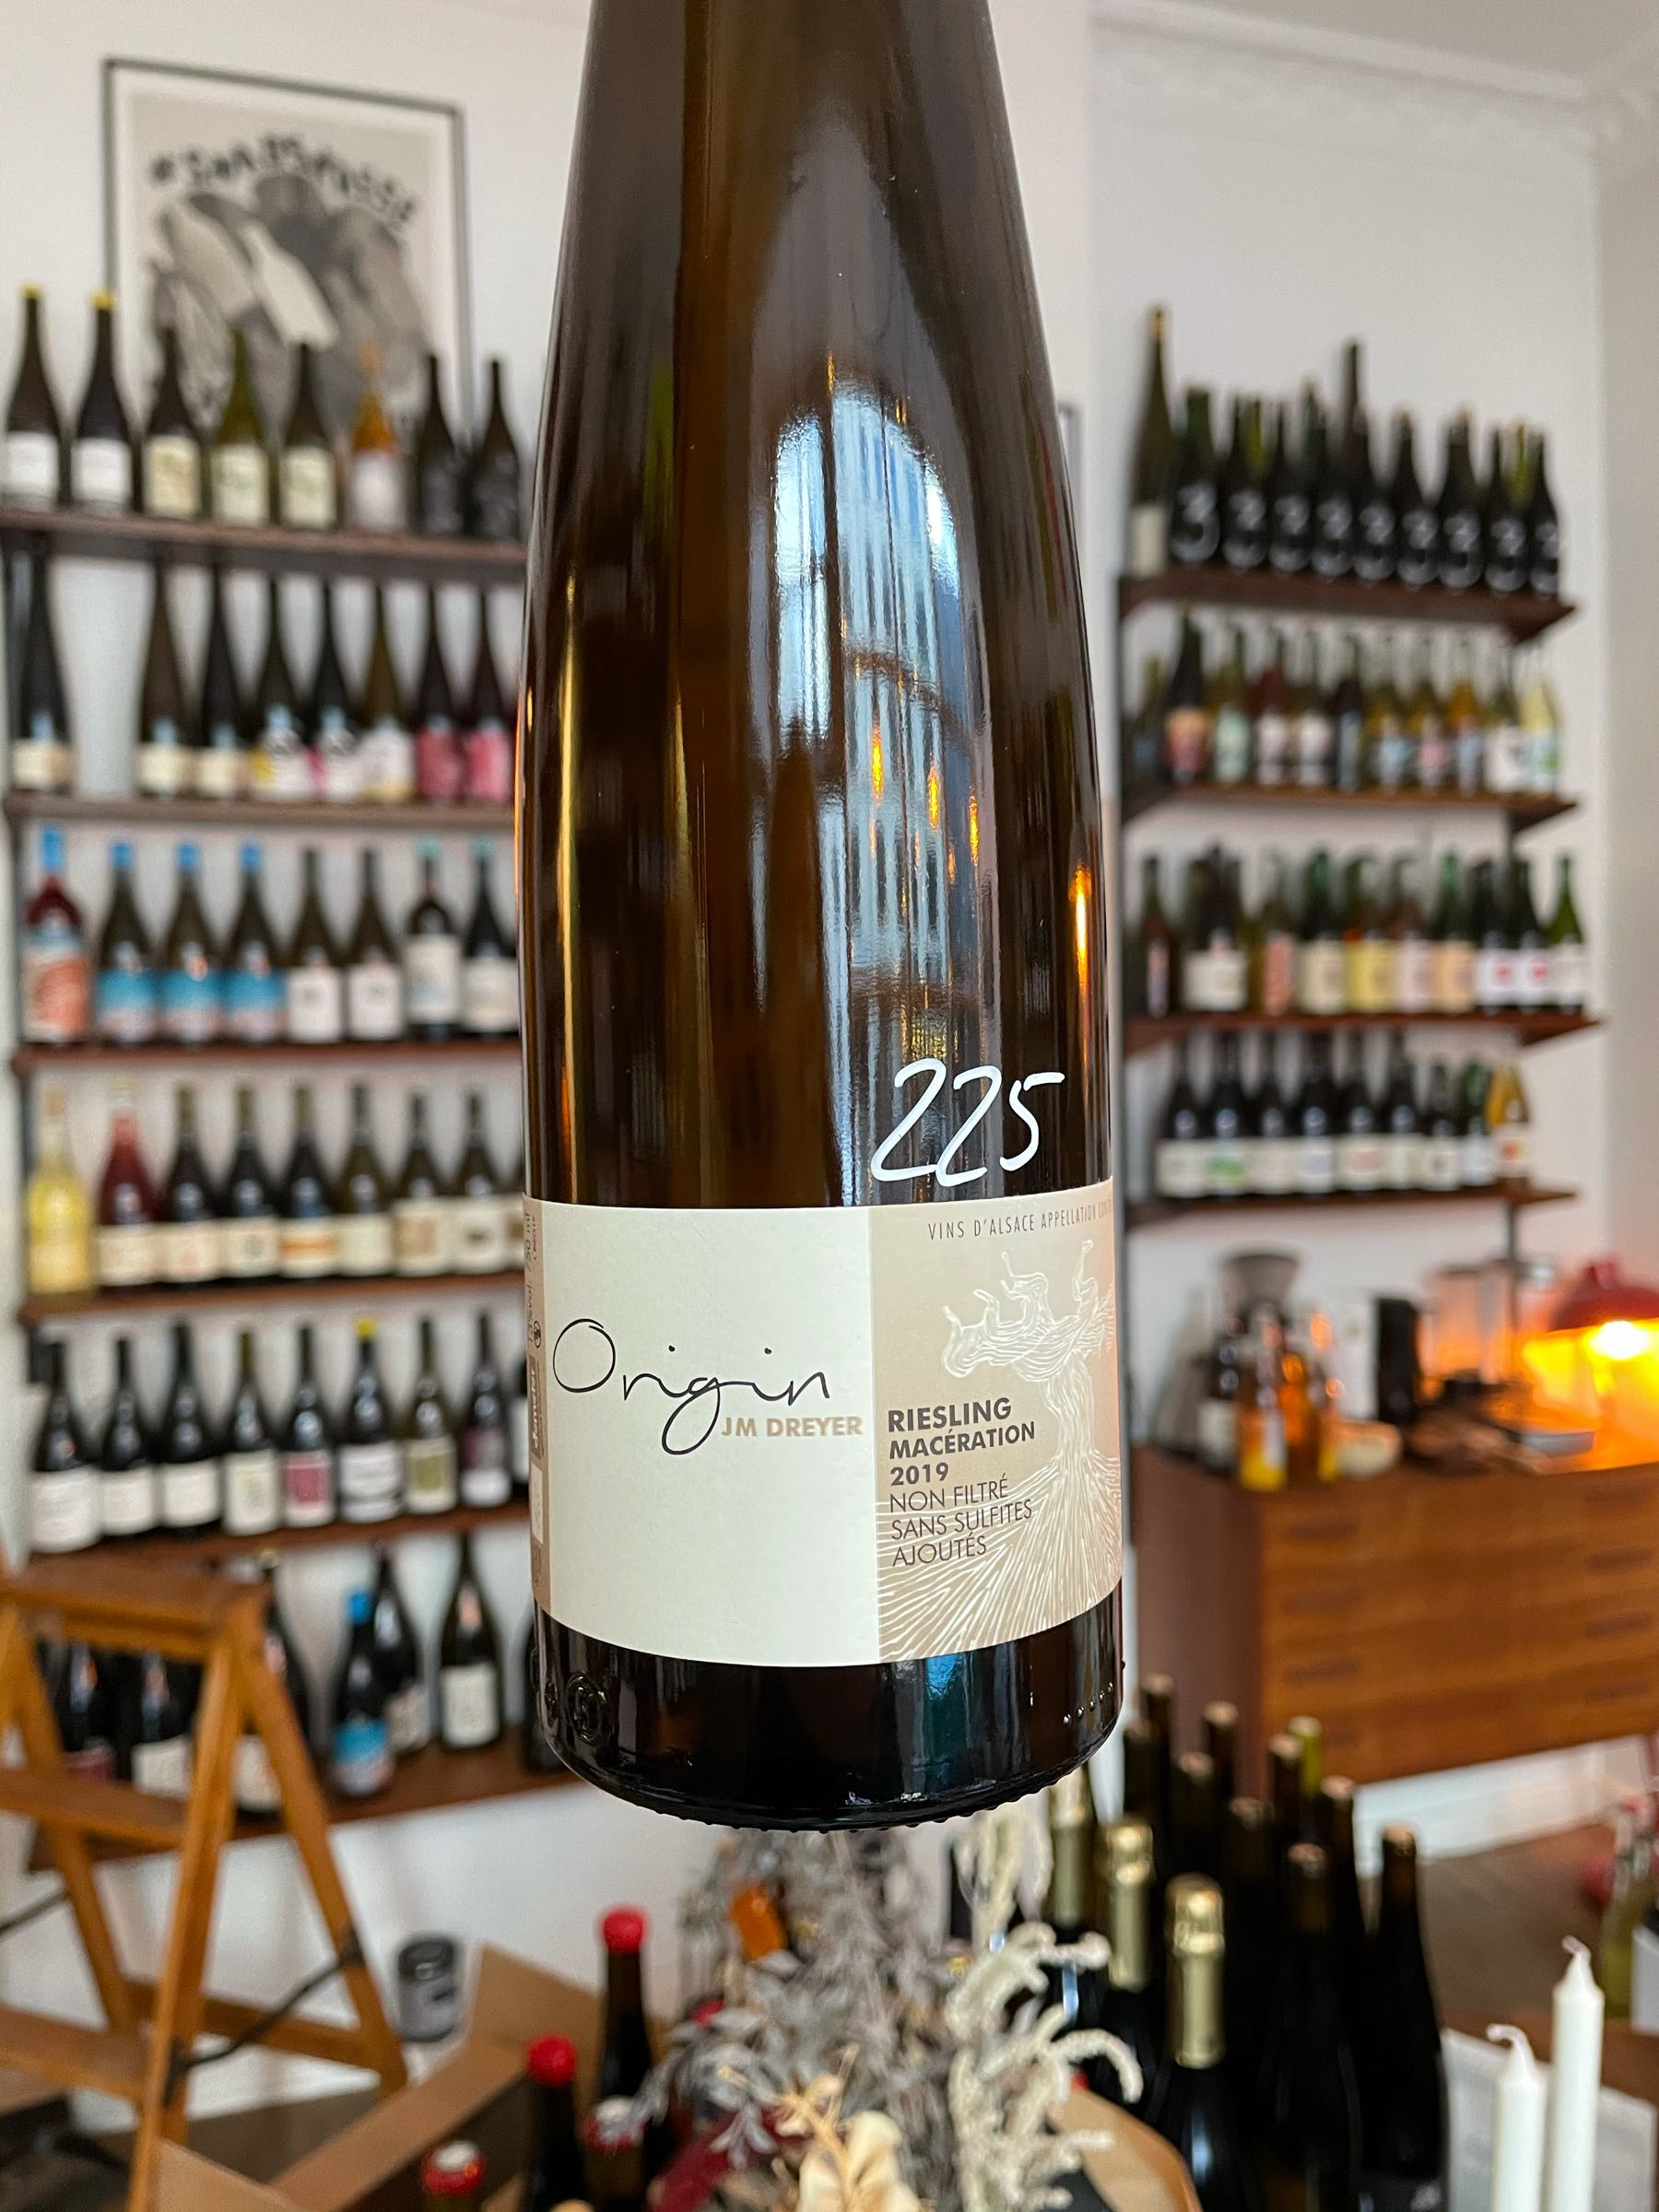 Origin Riesling 2019 - Jean Marc Dreyer